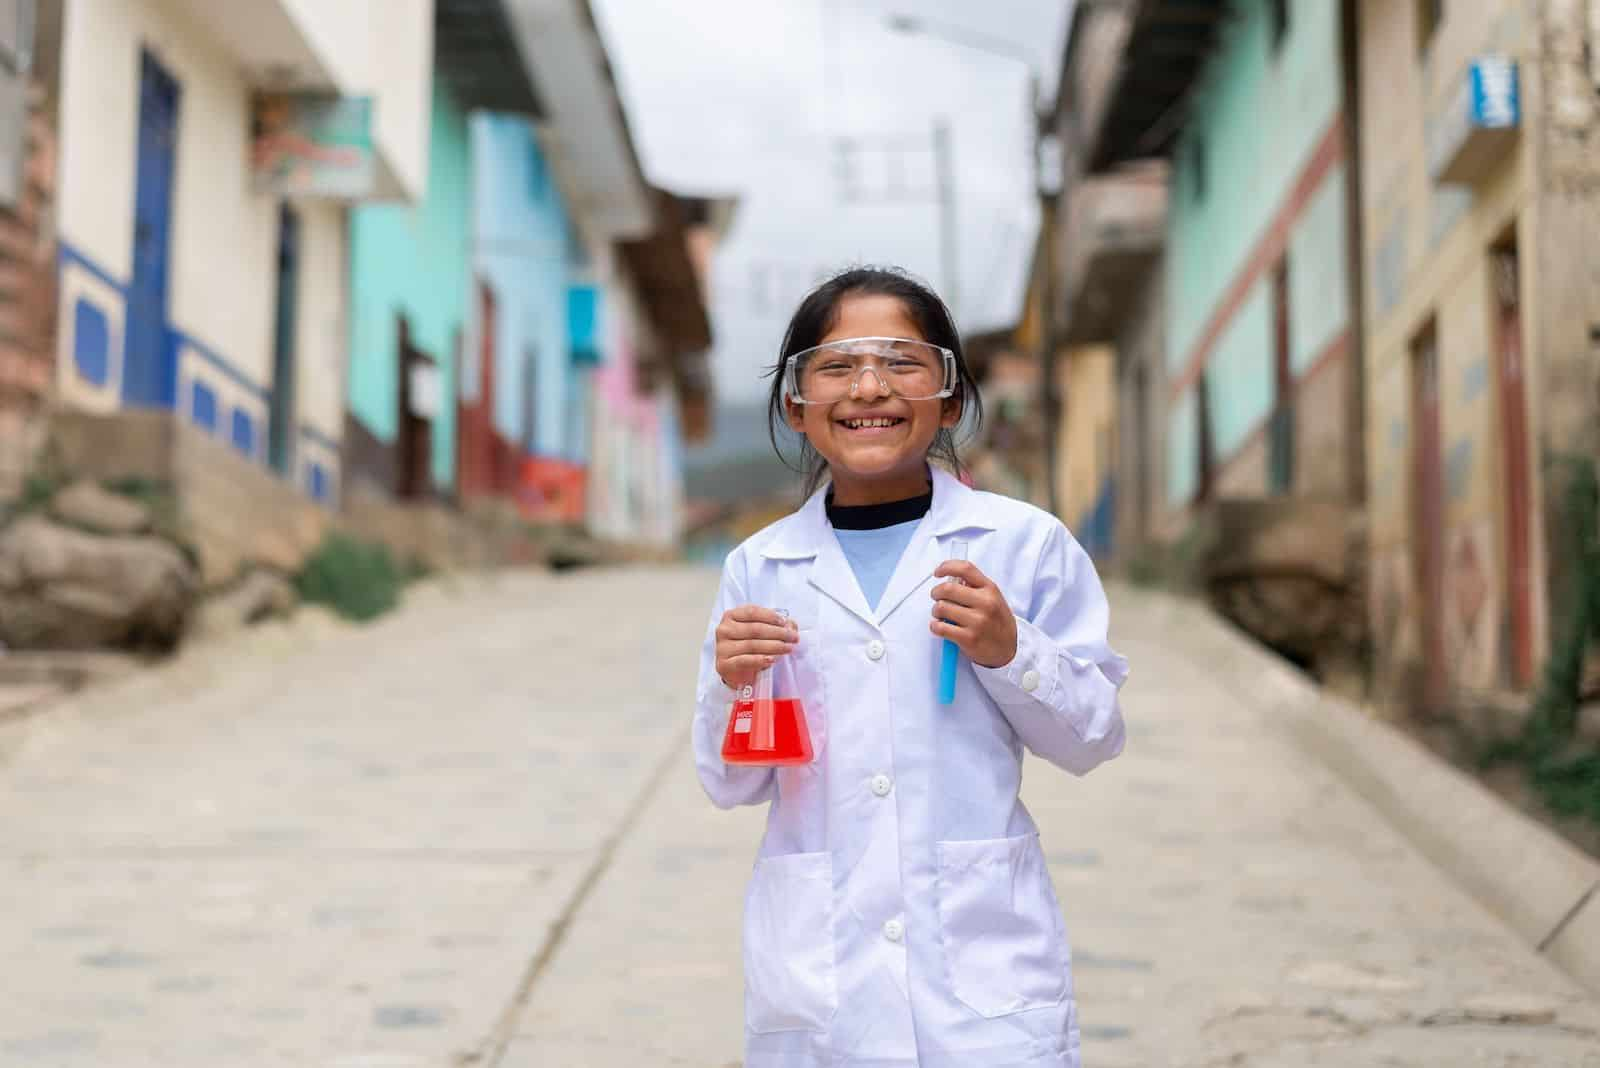 A girl wearing a white lab coat and safety glasses holds two beakers full of red and blue liquid, smiling at the camera. She stands on a street with a row of concrete homes.